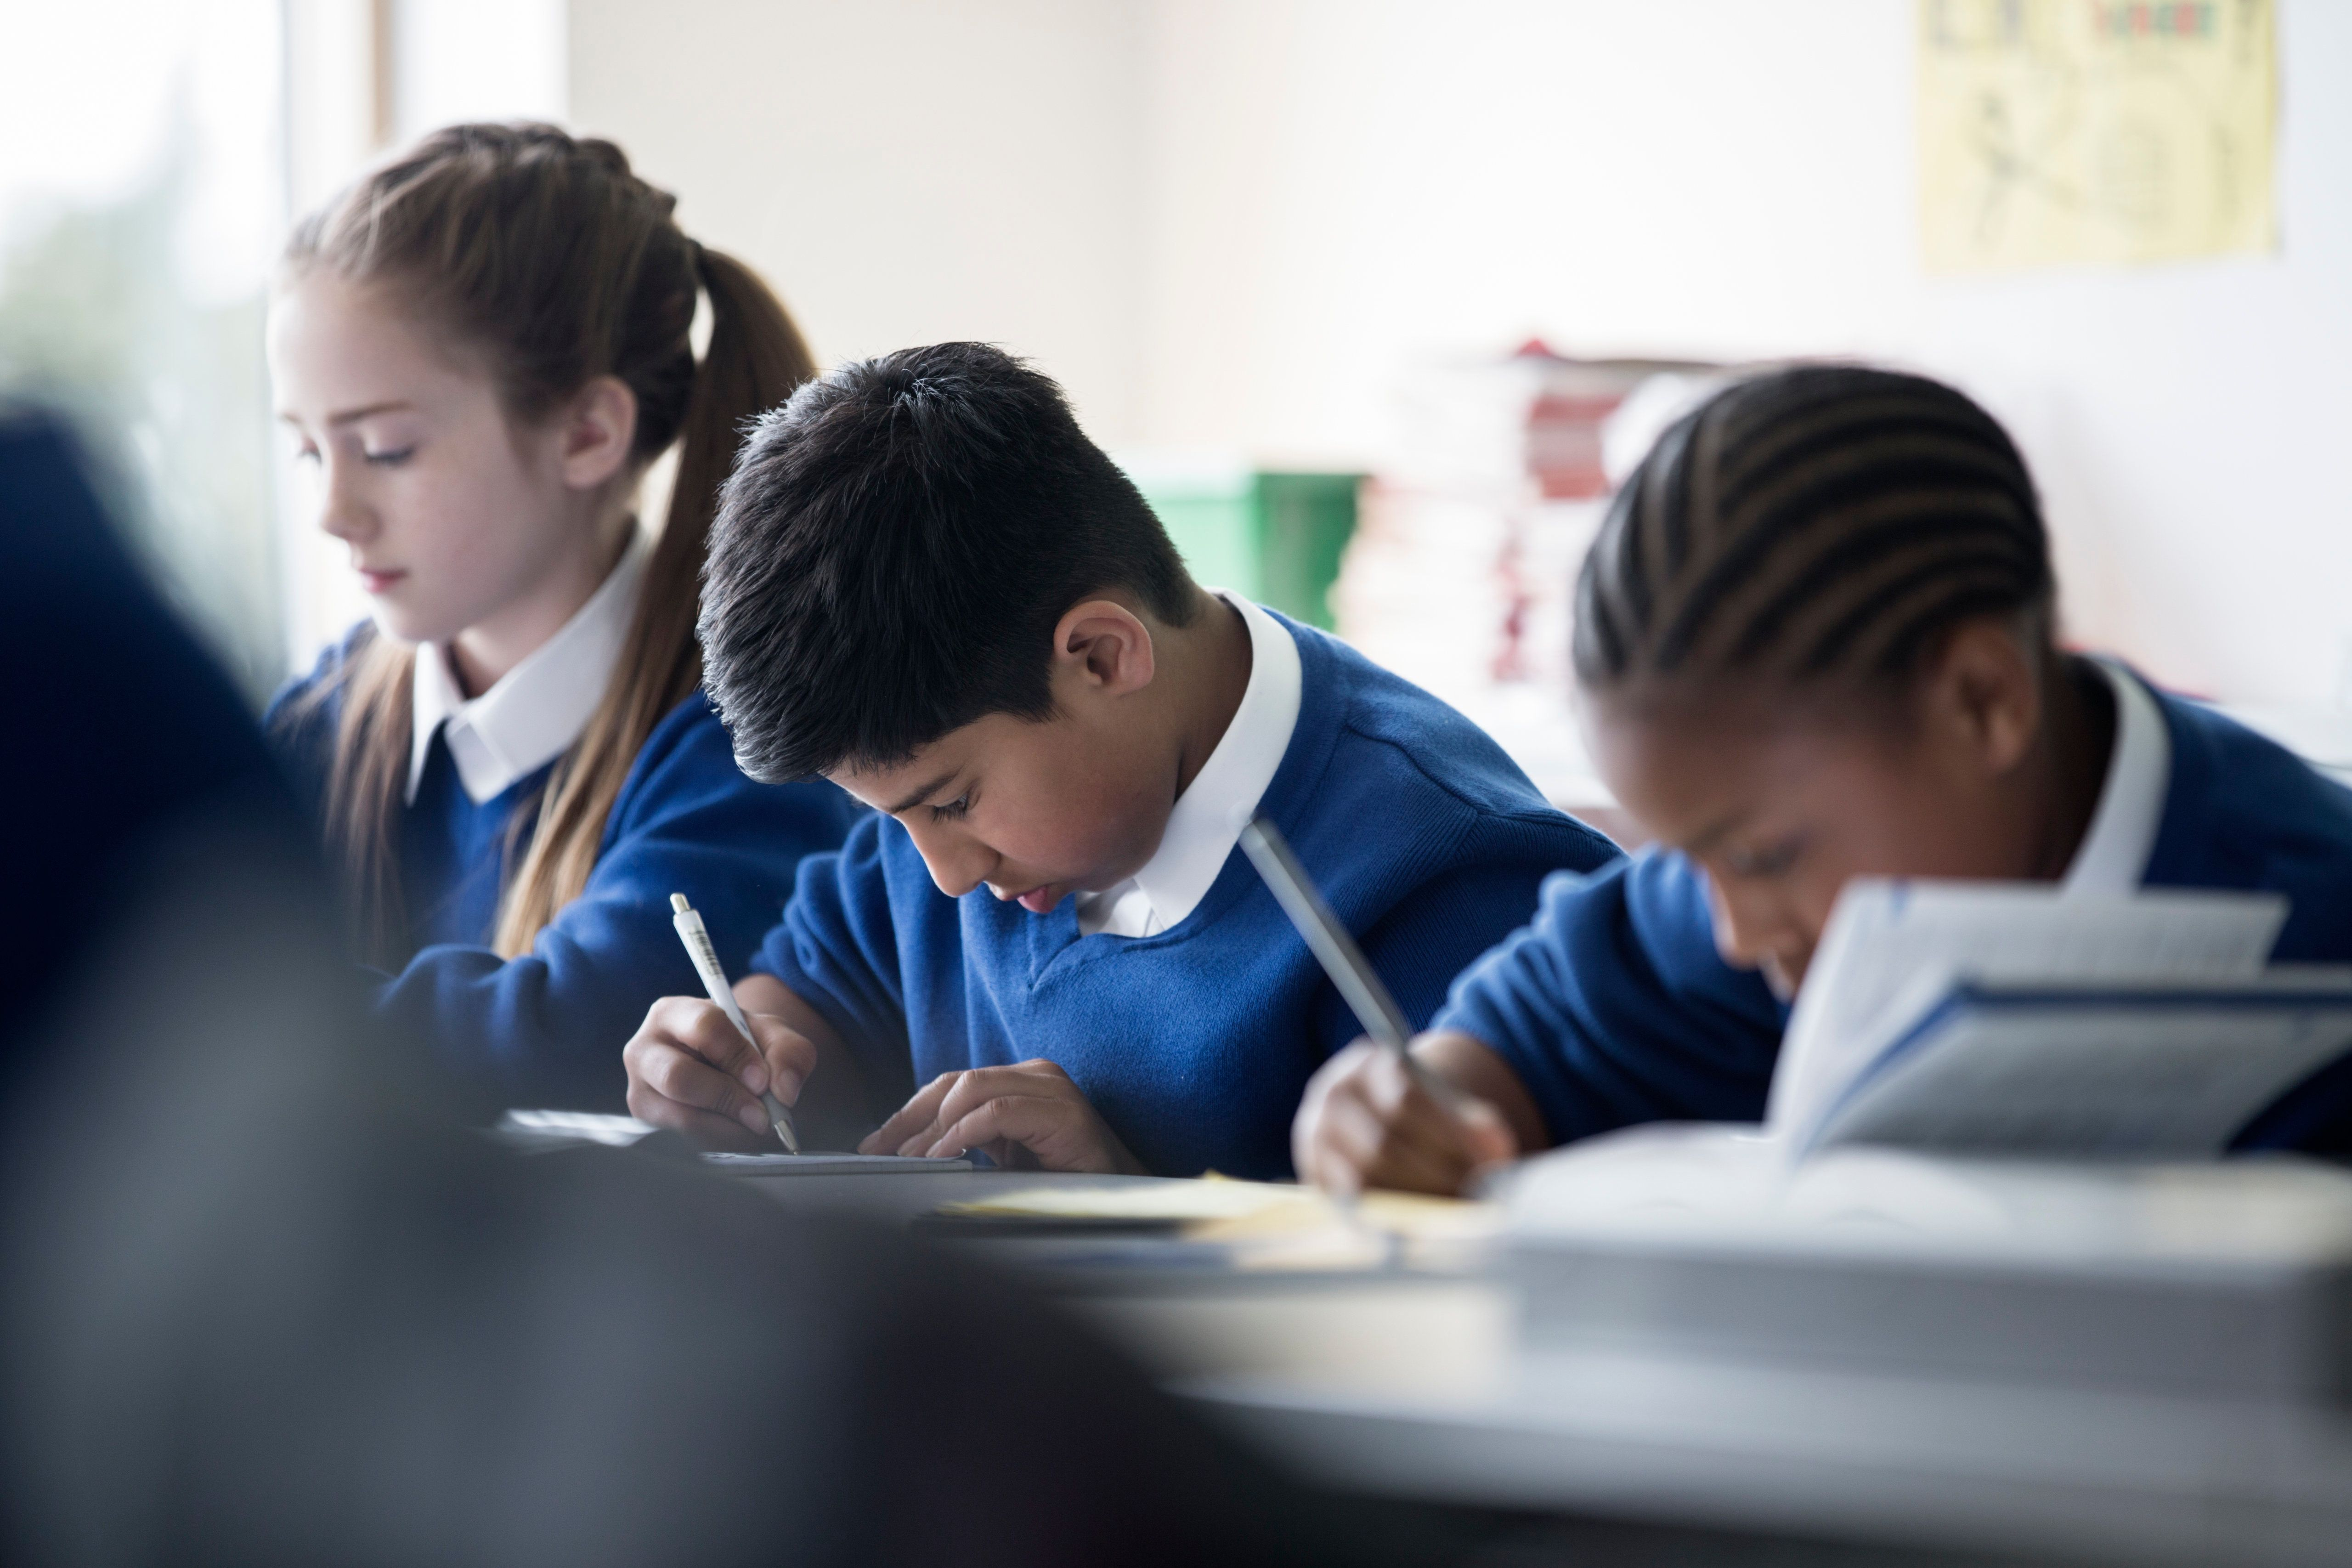 New Tests For Five-Year-Old Schoolchildren Being Considered By The Department For